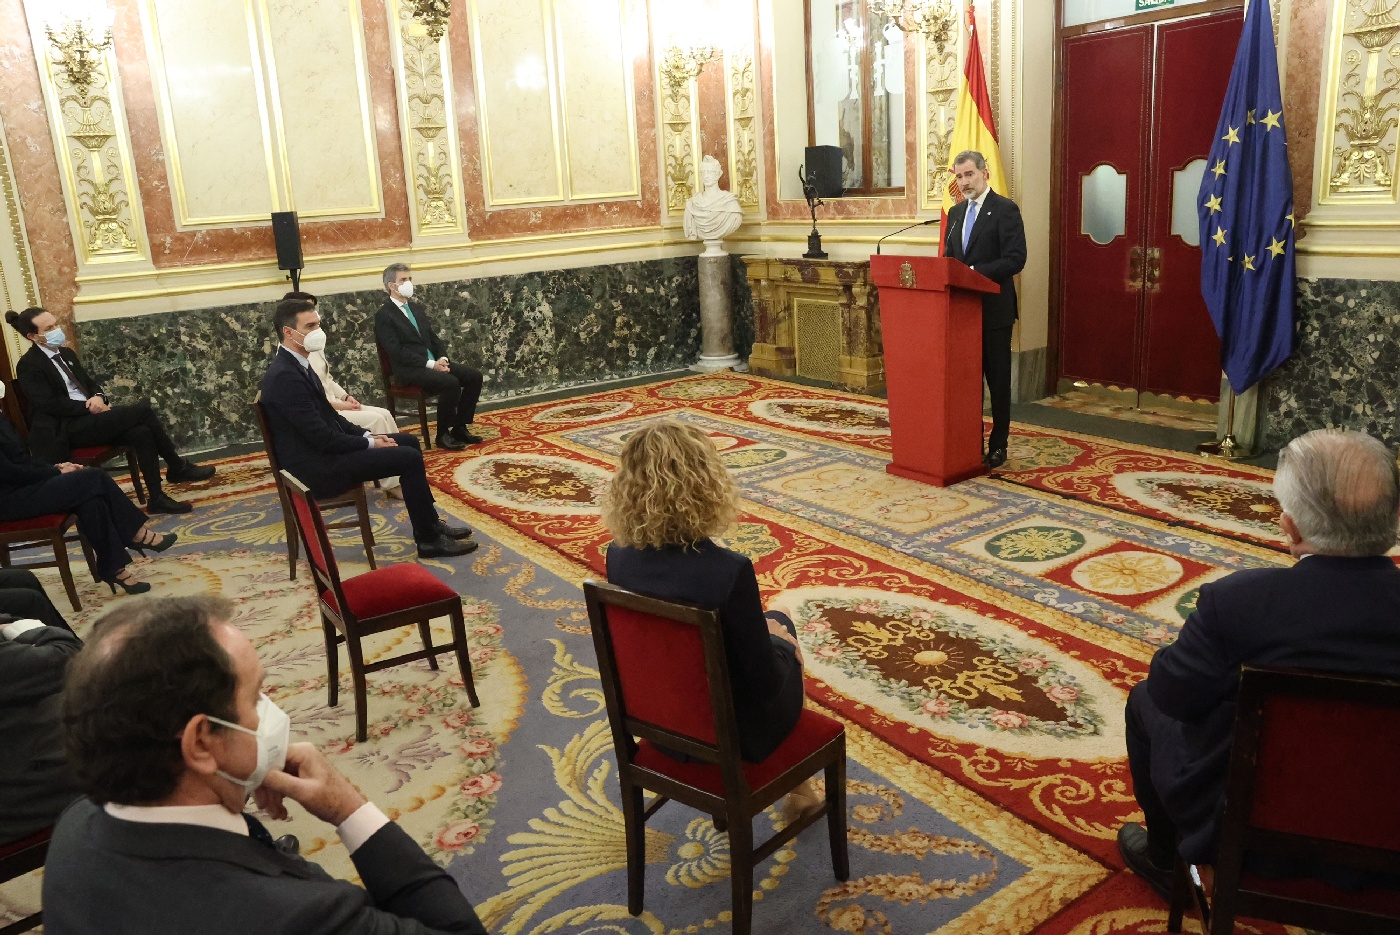 King Felipe of Spain attended 40TH Anniversary oF February 23, 1981's Institutional Act in Madrid